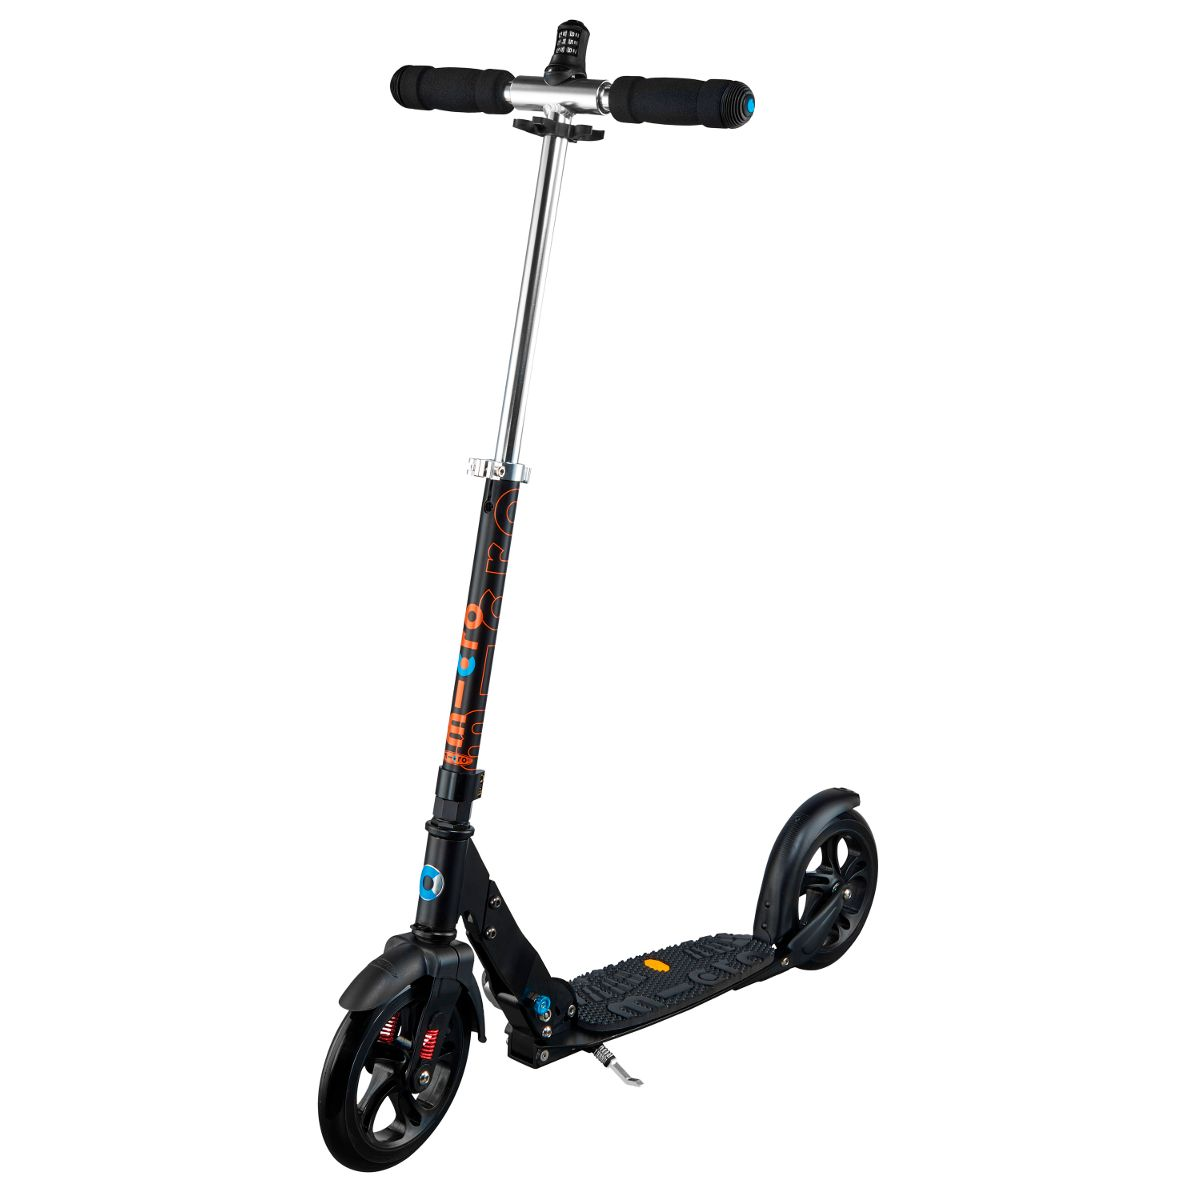 Deluxe Interlock Scooter mit Schloss